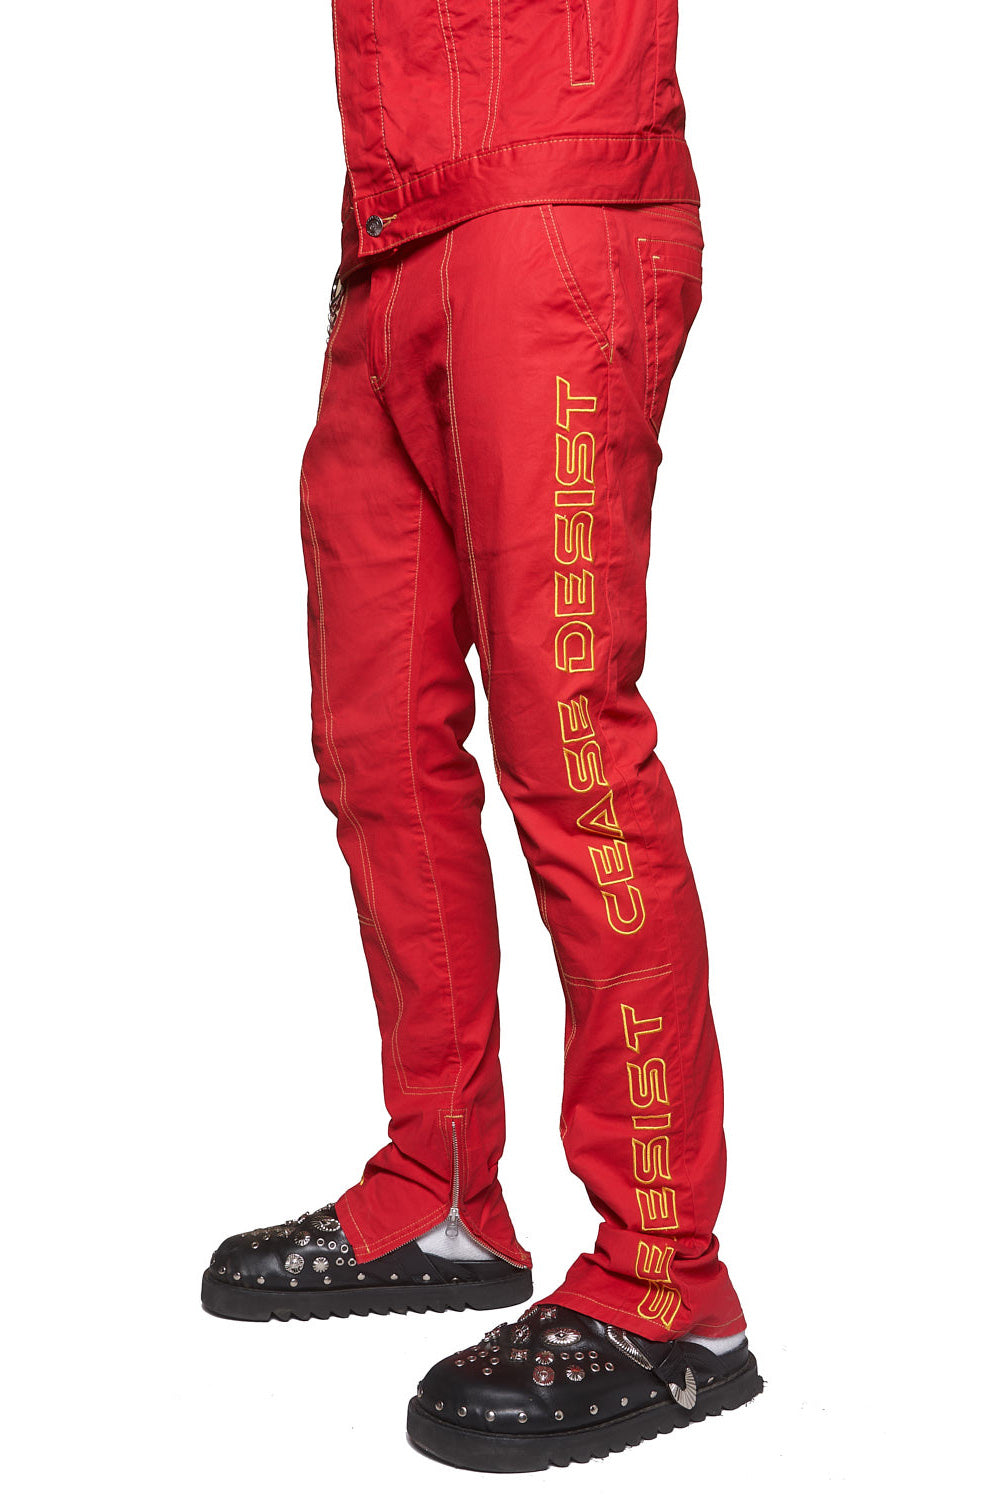 STRIKE PANTS (RED)